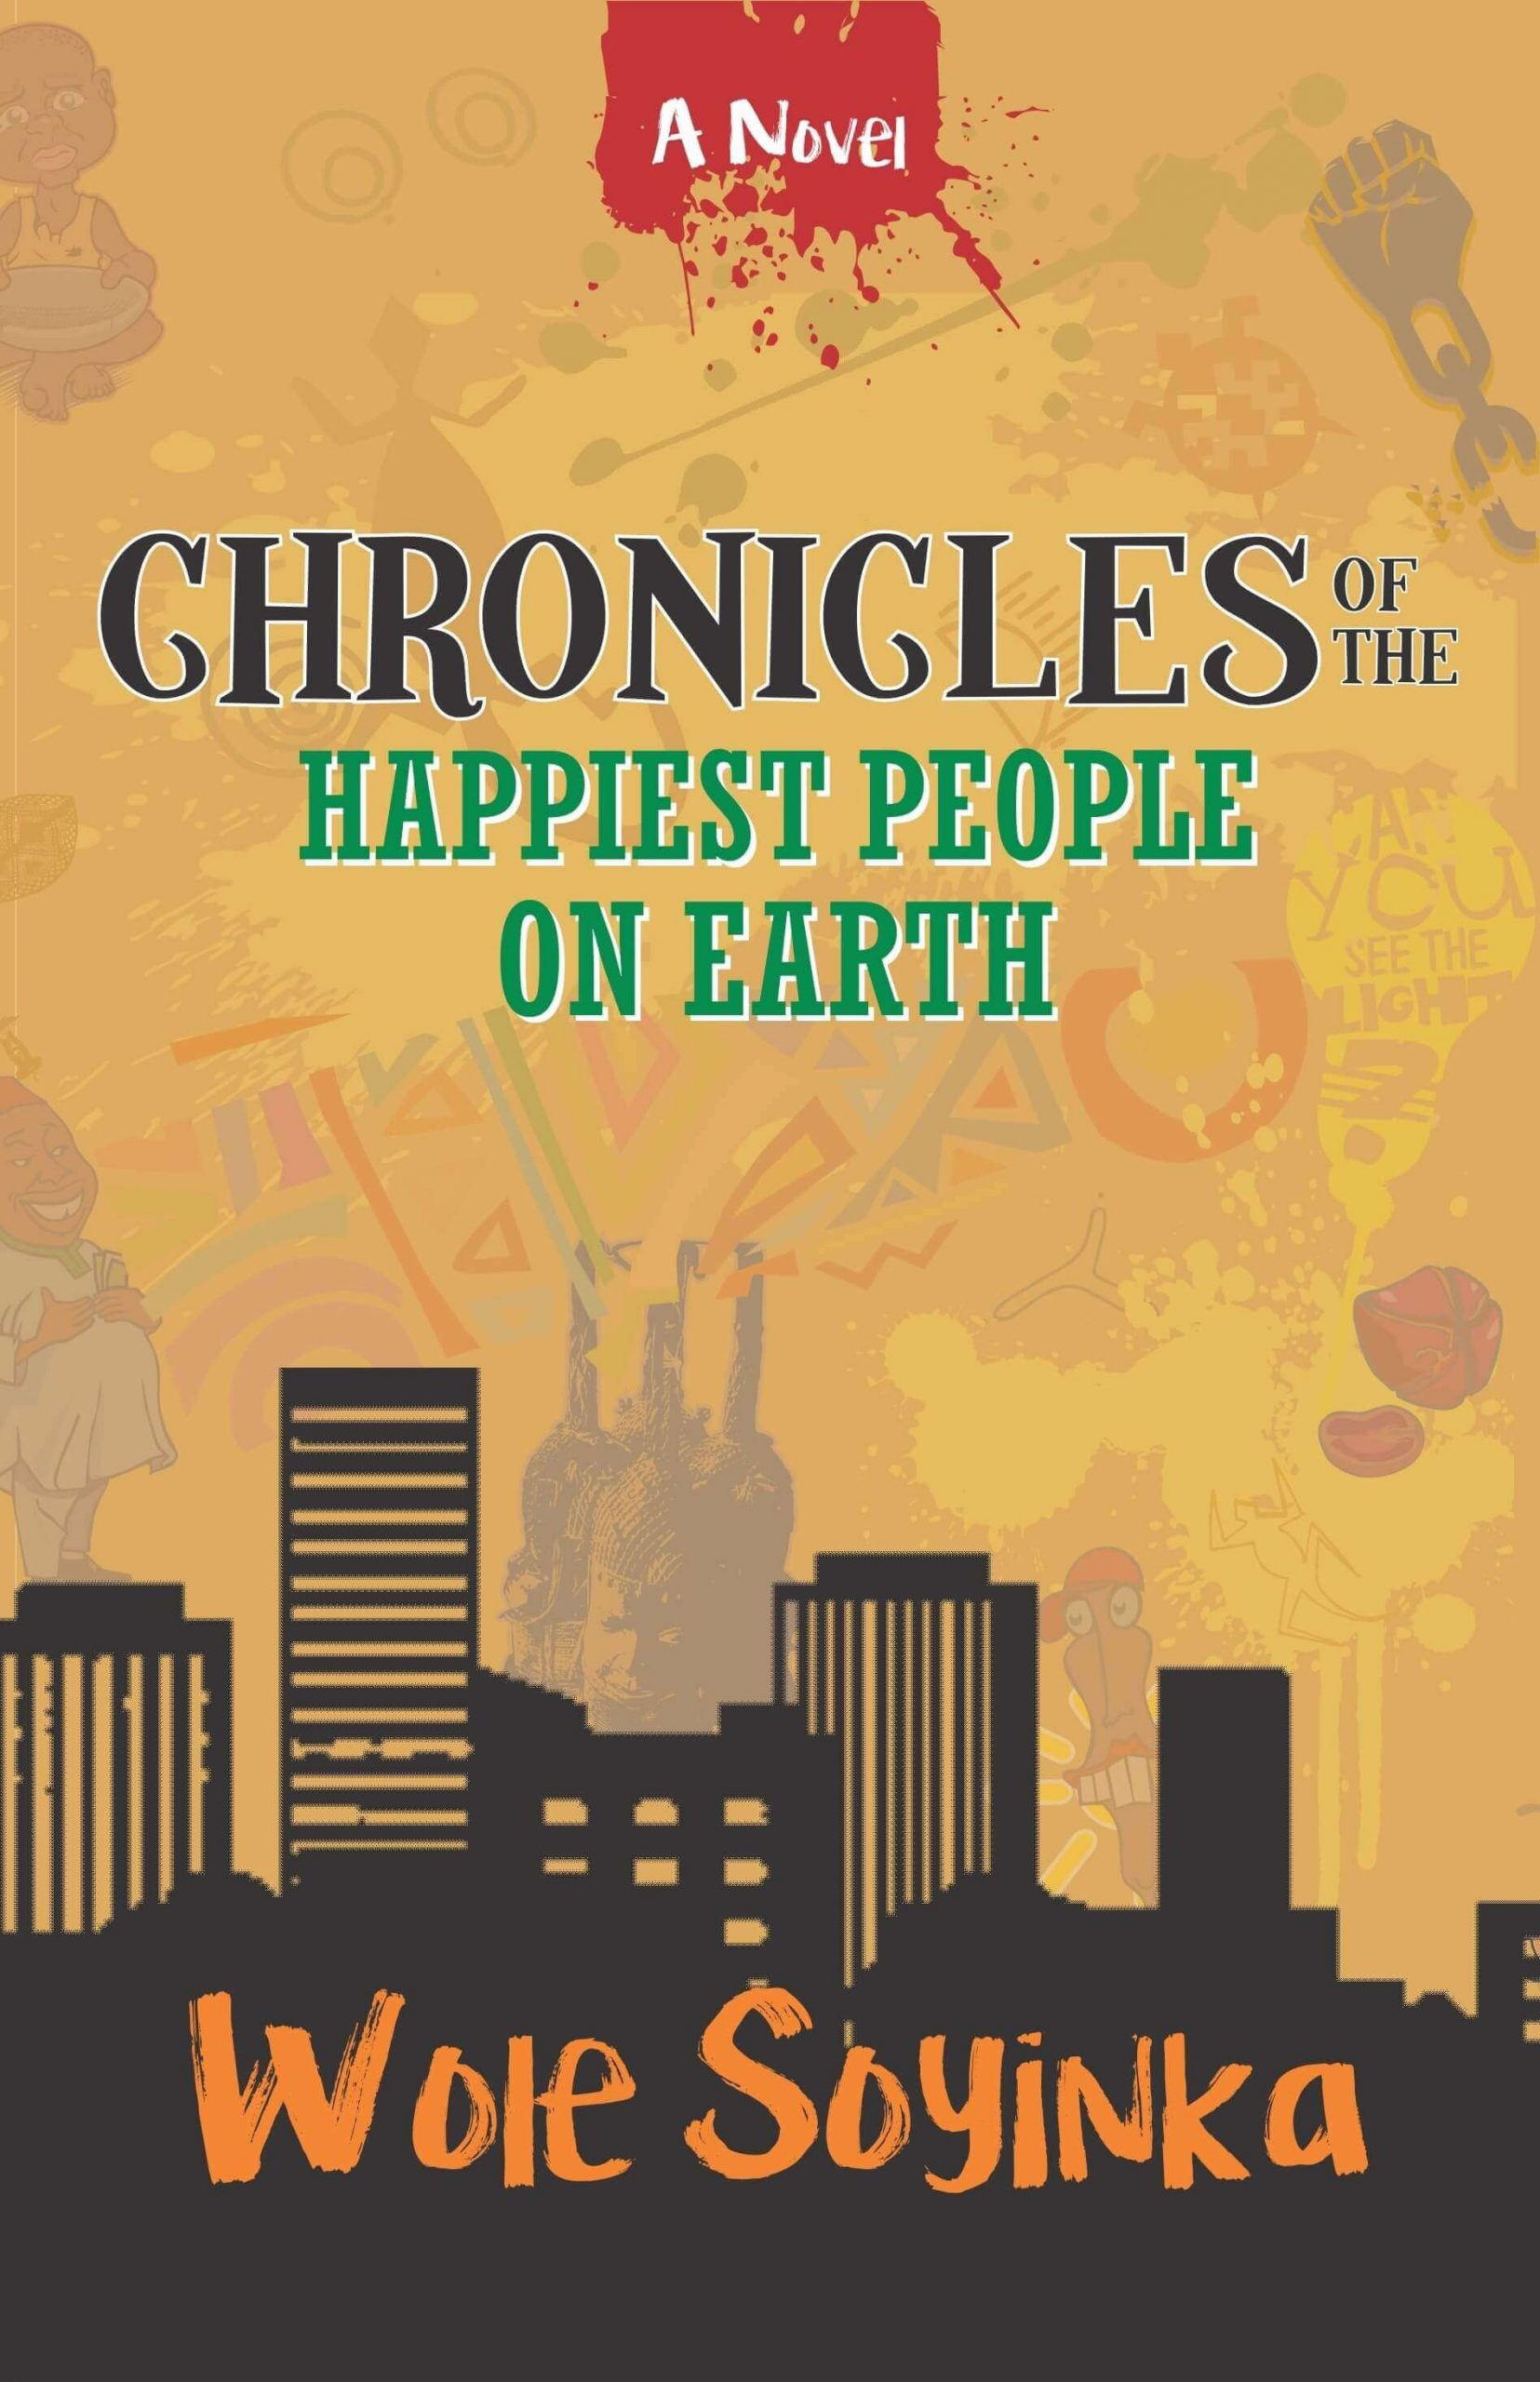 Chronicles of the happiest people on earth